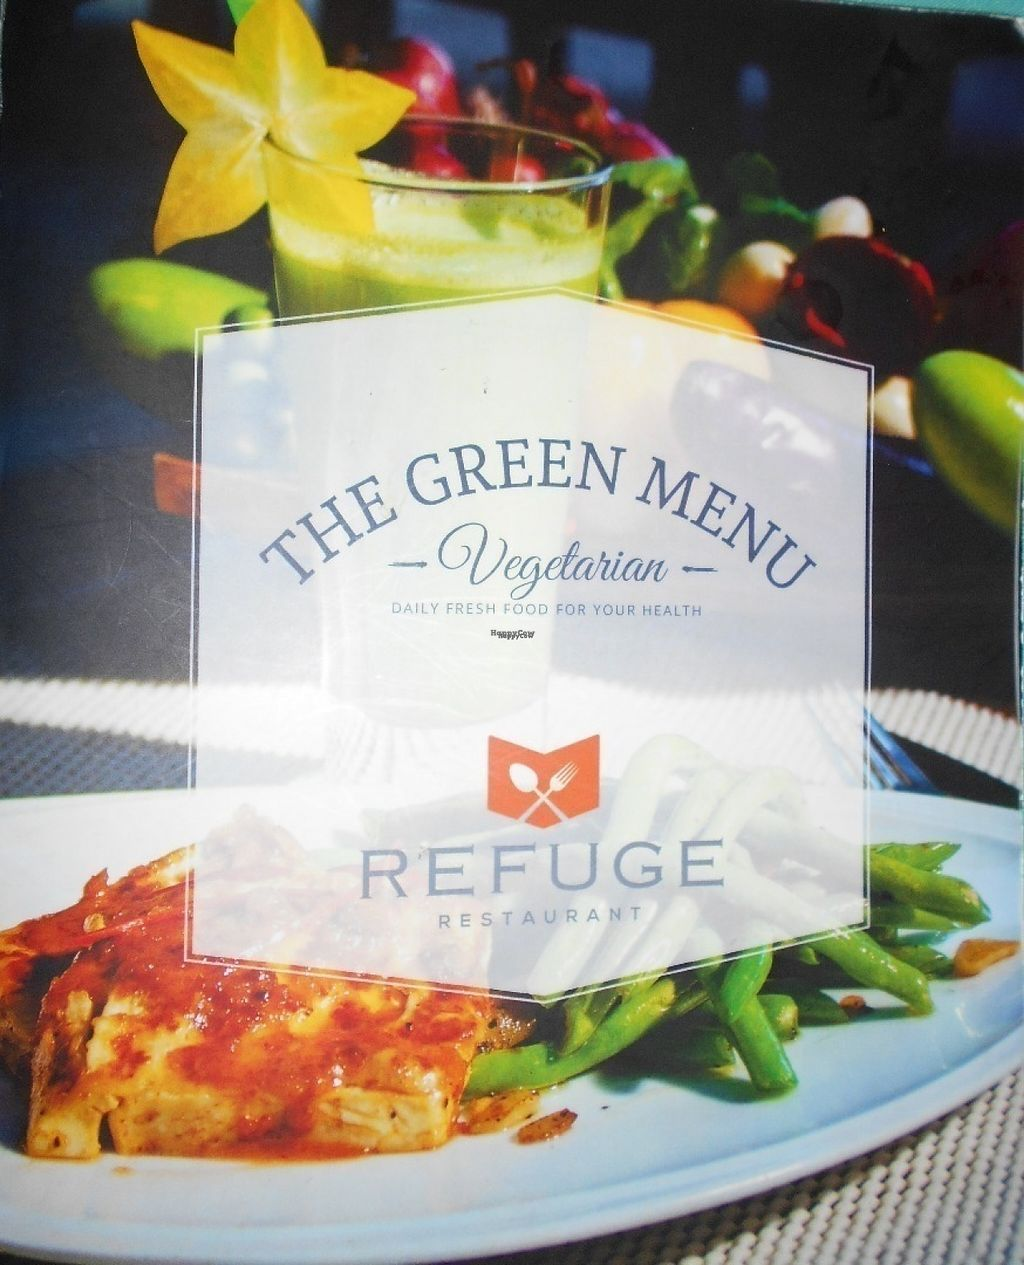 """Photo of Refuge Restaurant  by <a href=""""/members/profile/Kelly%20Kelly"""">Kelly Kelly</a> <br/>Refuge Restaurant -  <br/> August 5, 2016  - <a href='/contact/abuse/image/77945/165748'>Report</a>"""